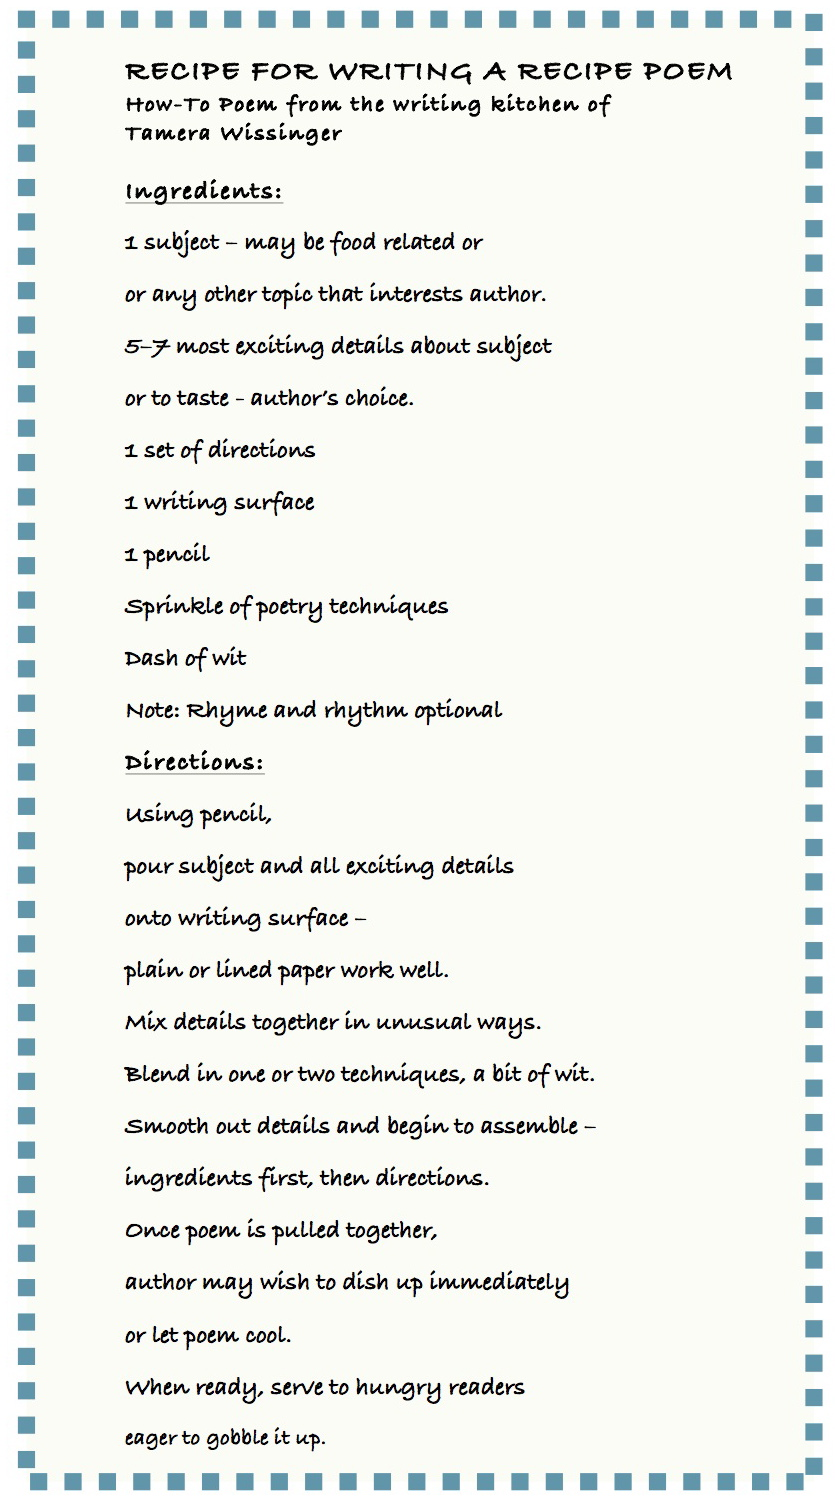 Smack dab in the middle recipe for writing a recipe poem november happy thanksgiving and happy recipe poem writing forumfinder Gallery